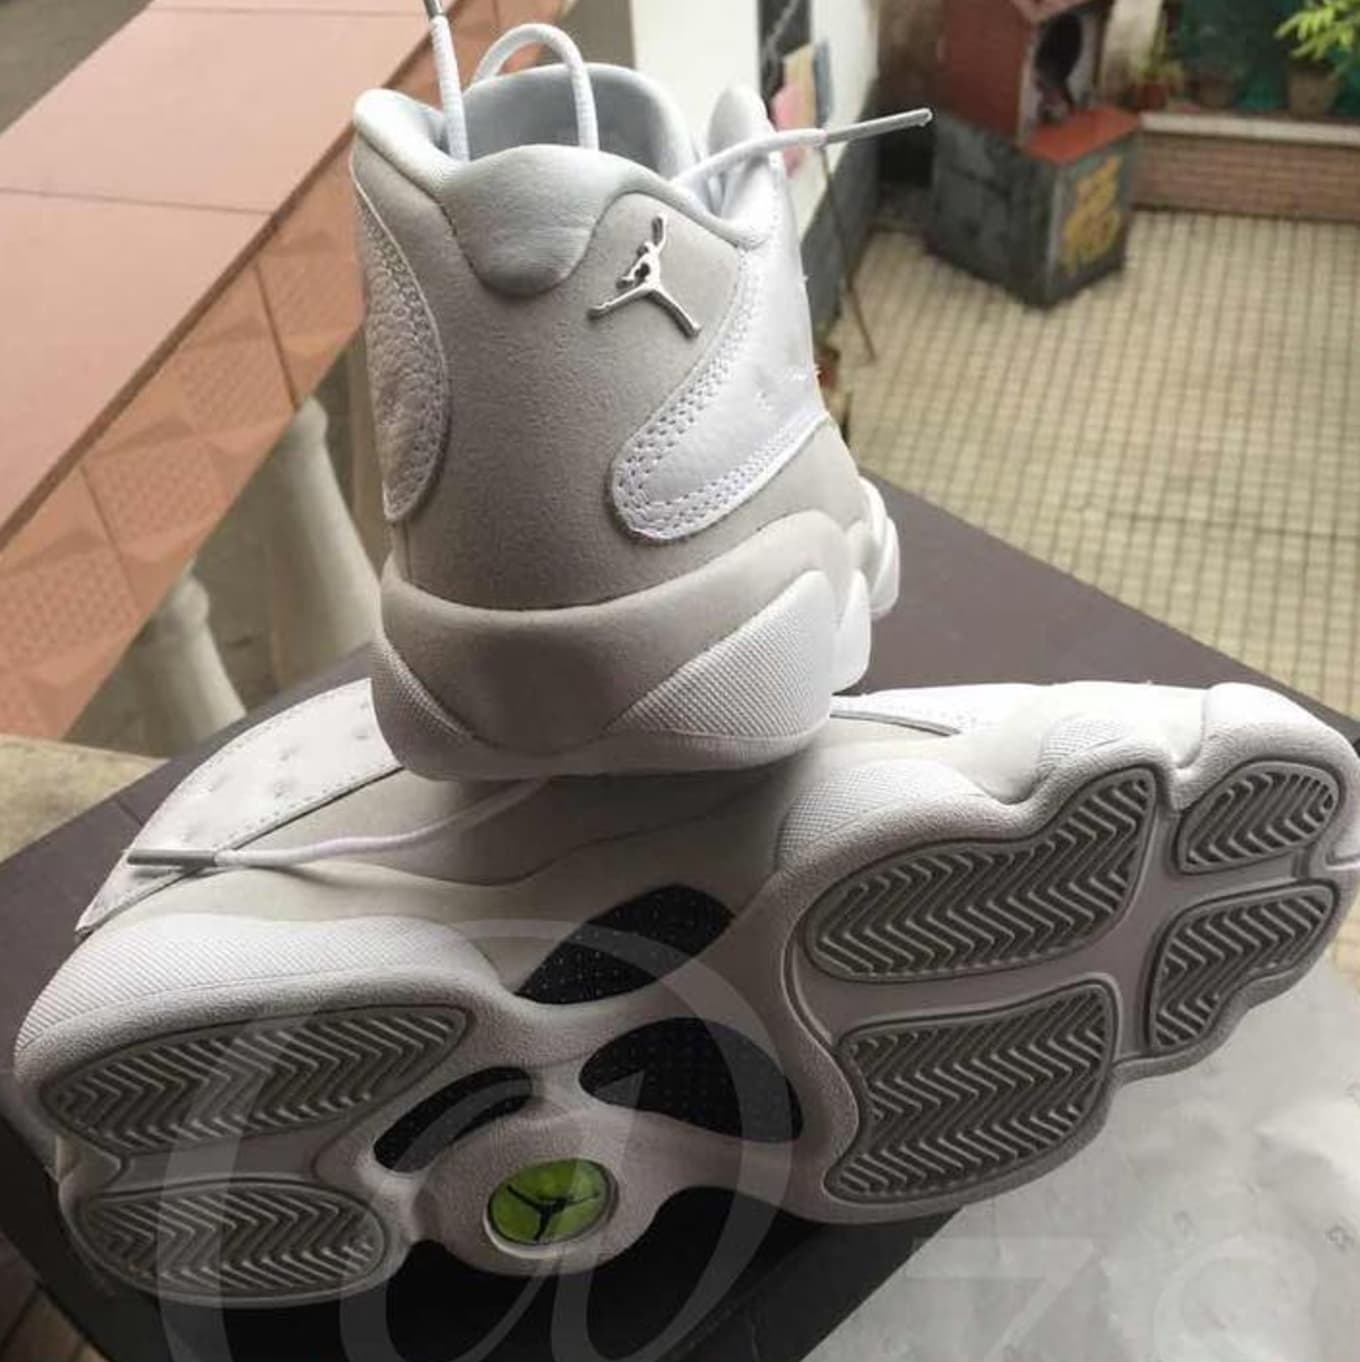 ad55c18ab54 Air Jordan 13 Low White Metallic Silver Release Date | Sole Collector